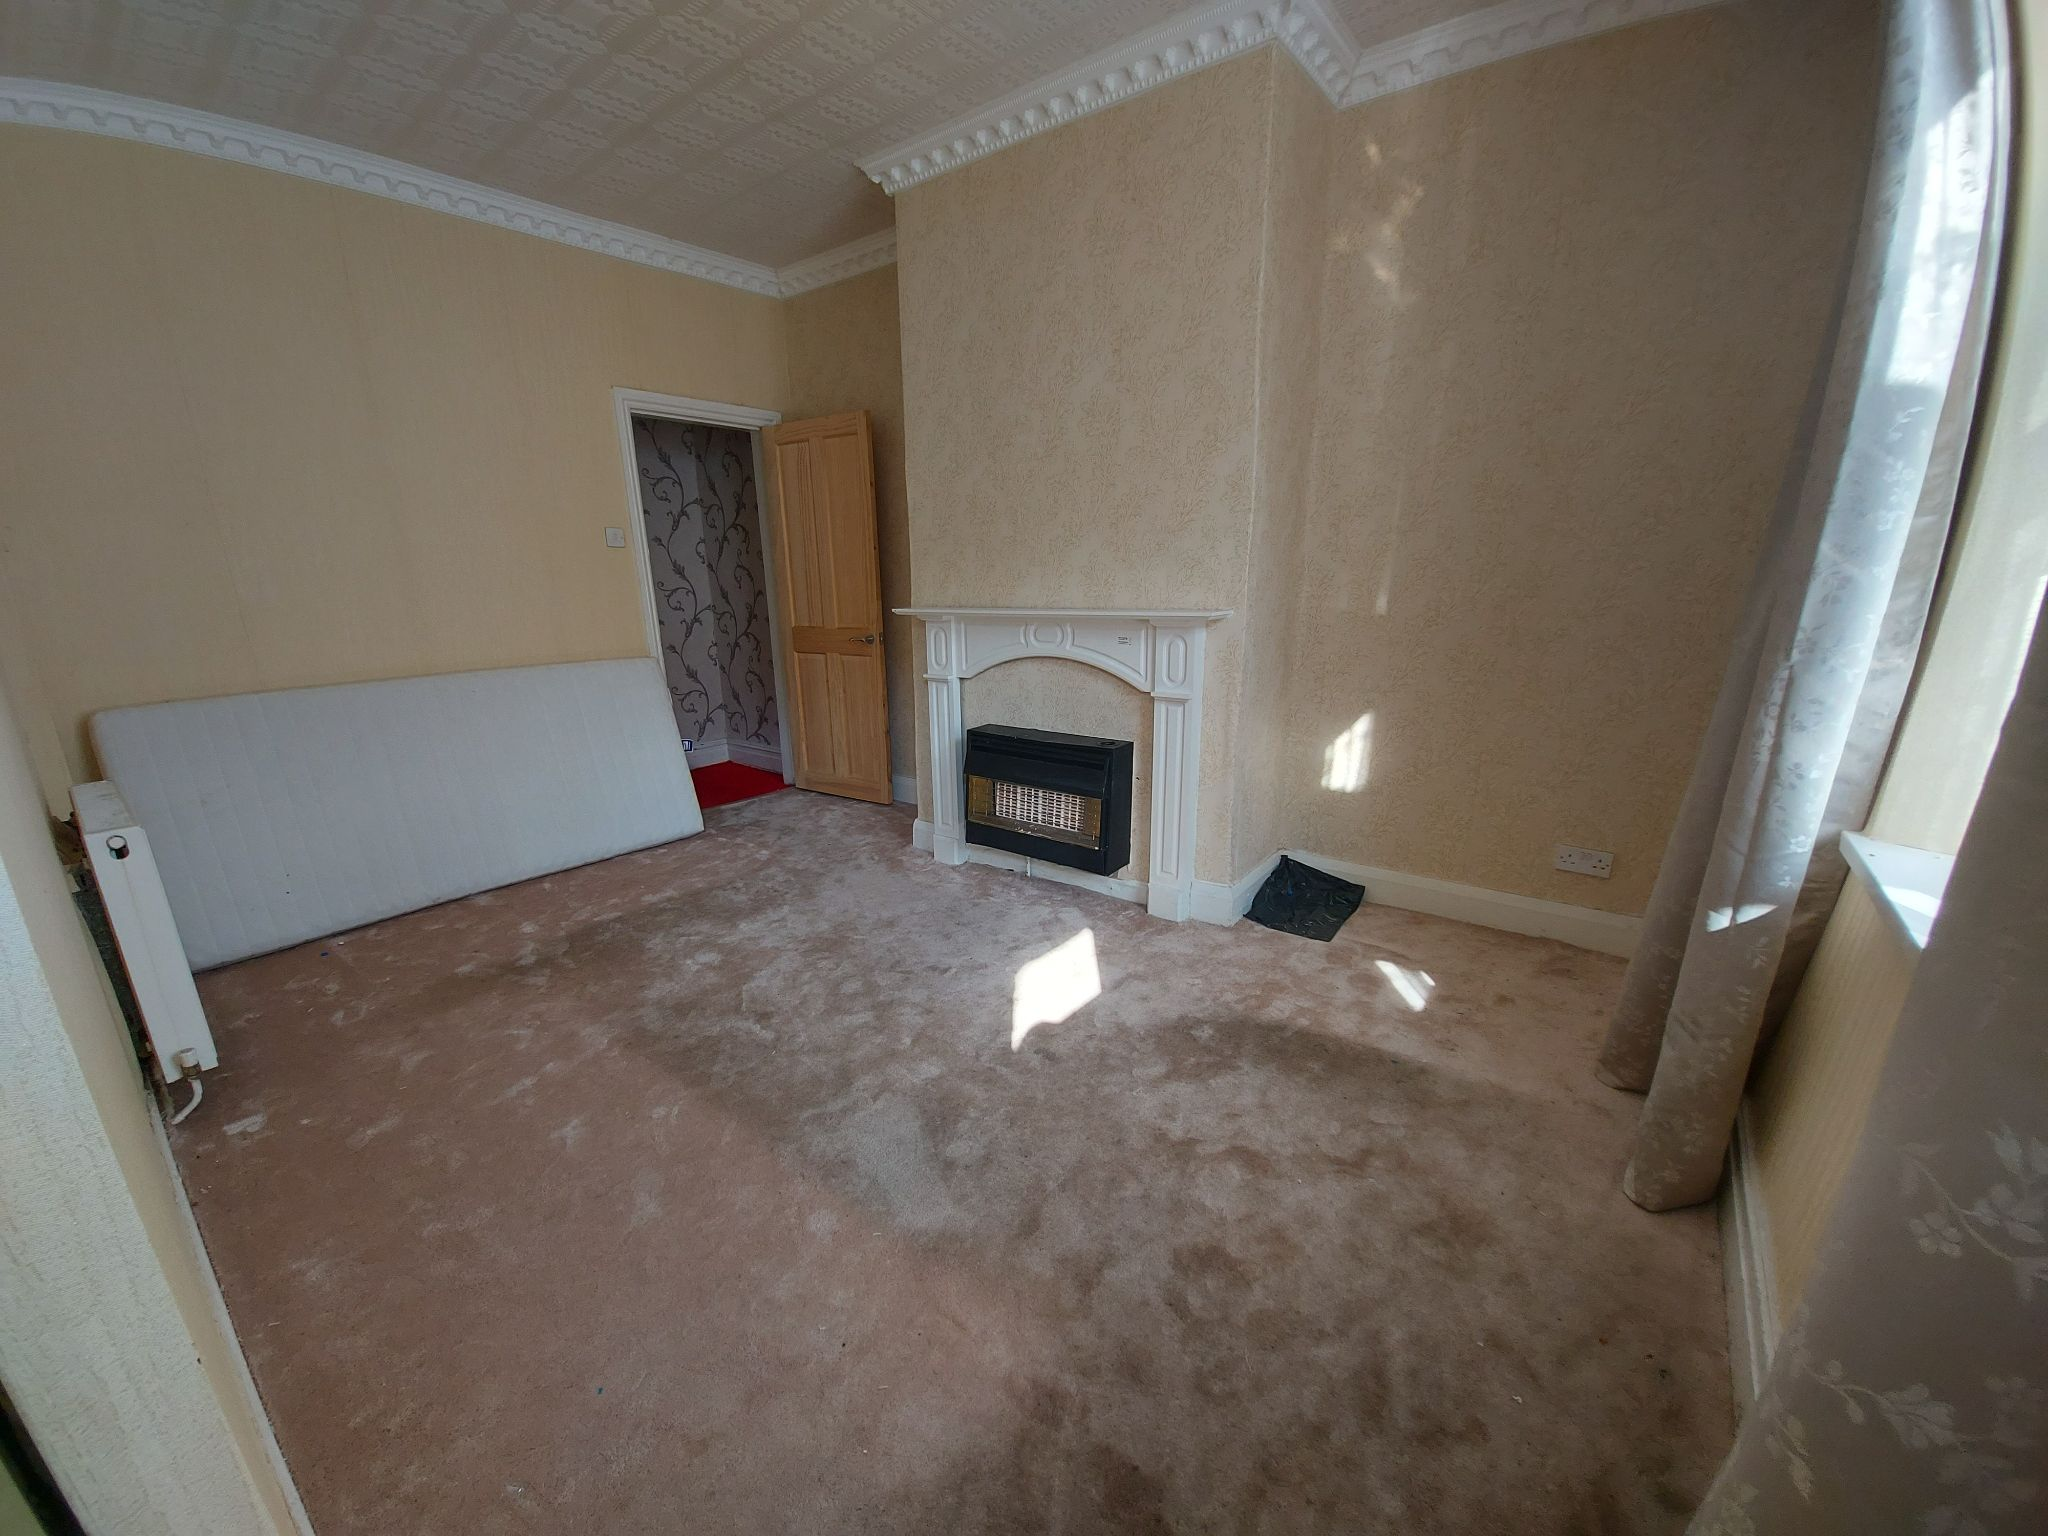 2 bedroom mid terraced house Let in Bradford - Photograph 2.